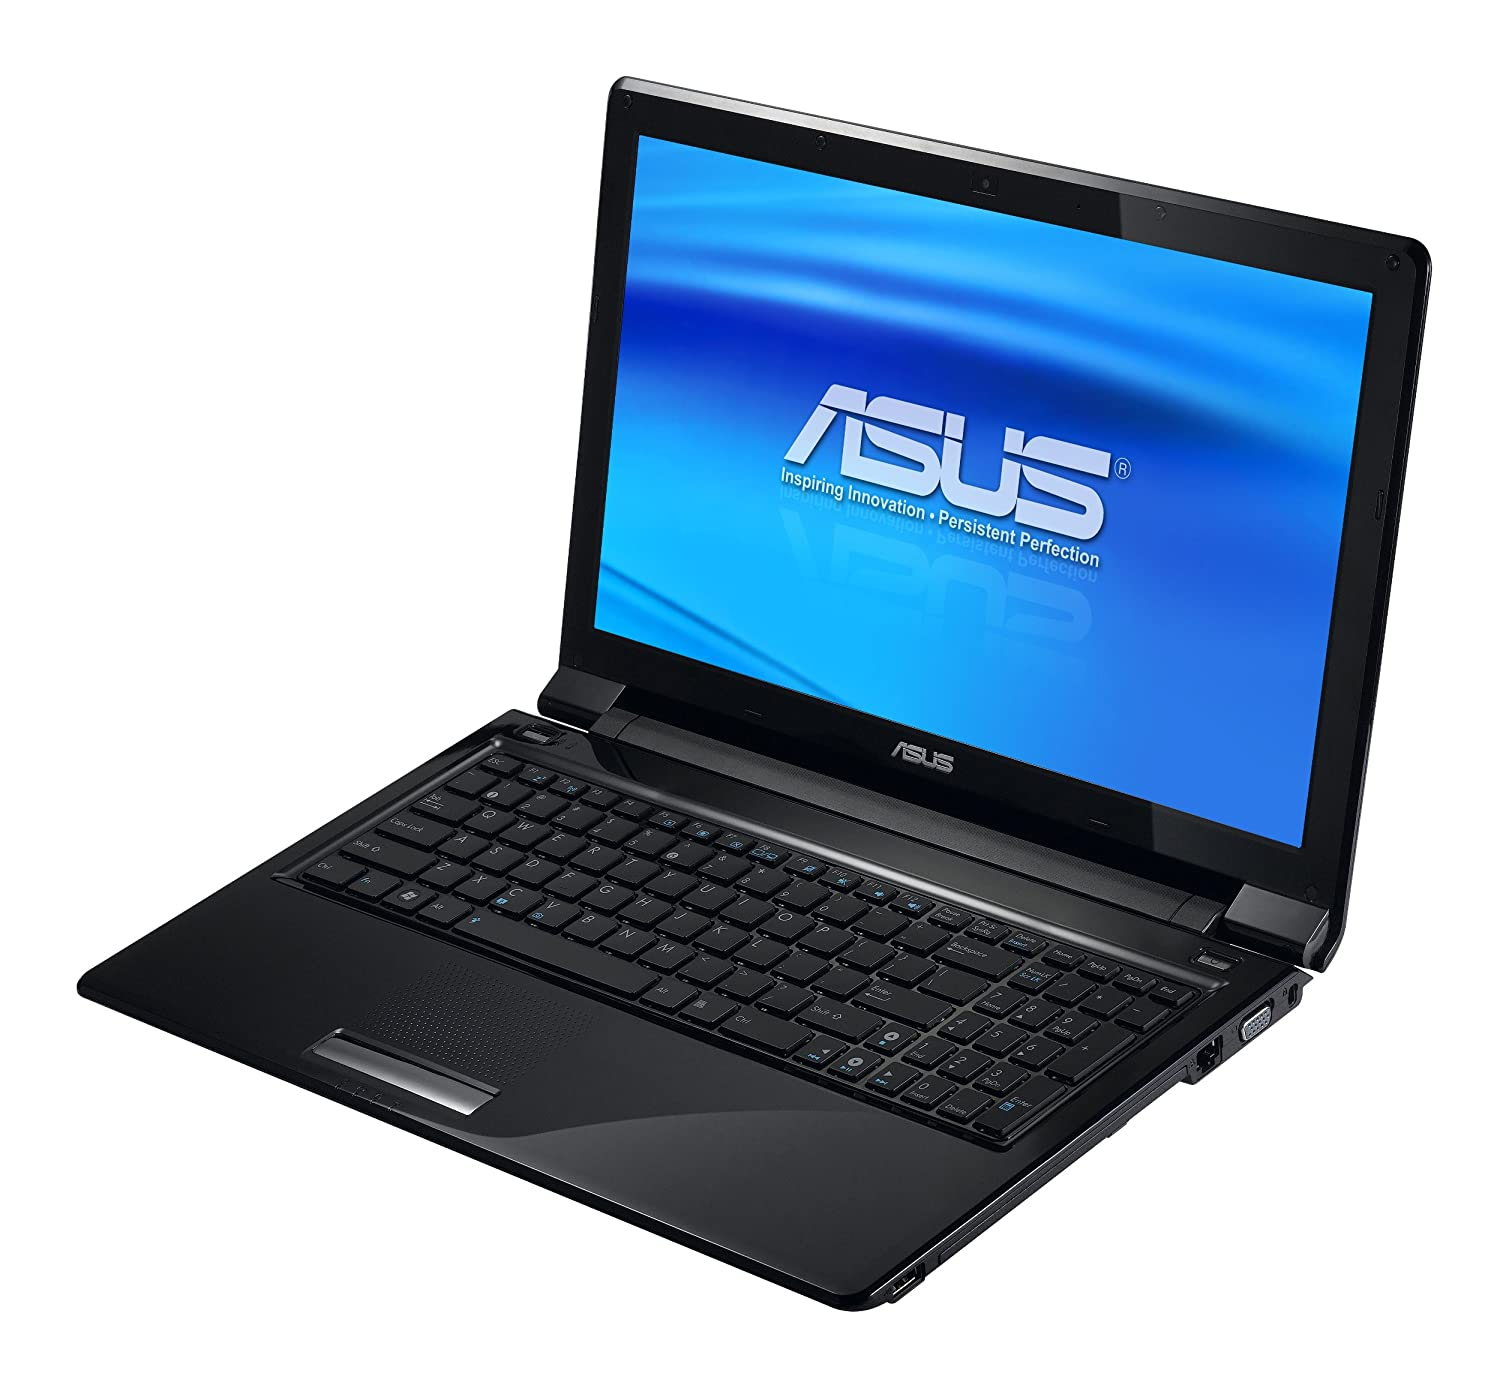 ASUS UL50AG-A2 DRIVERS WINDOWS